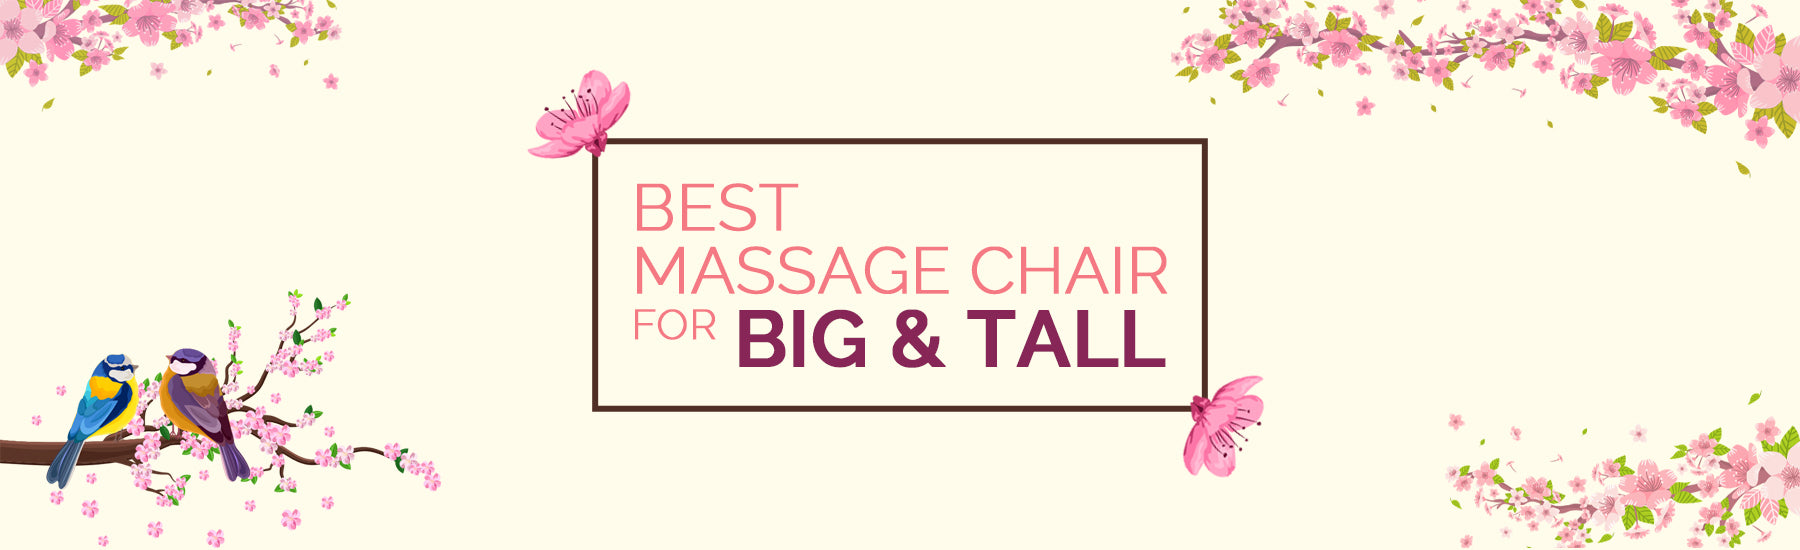 Best Massage Chairs for Big and Tall 2021